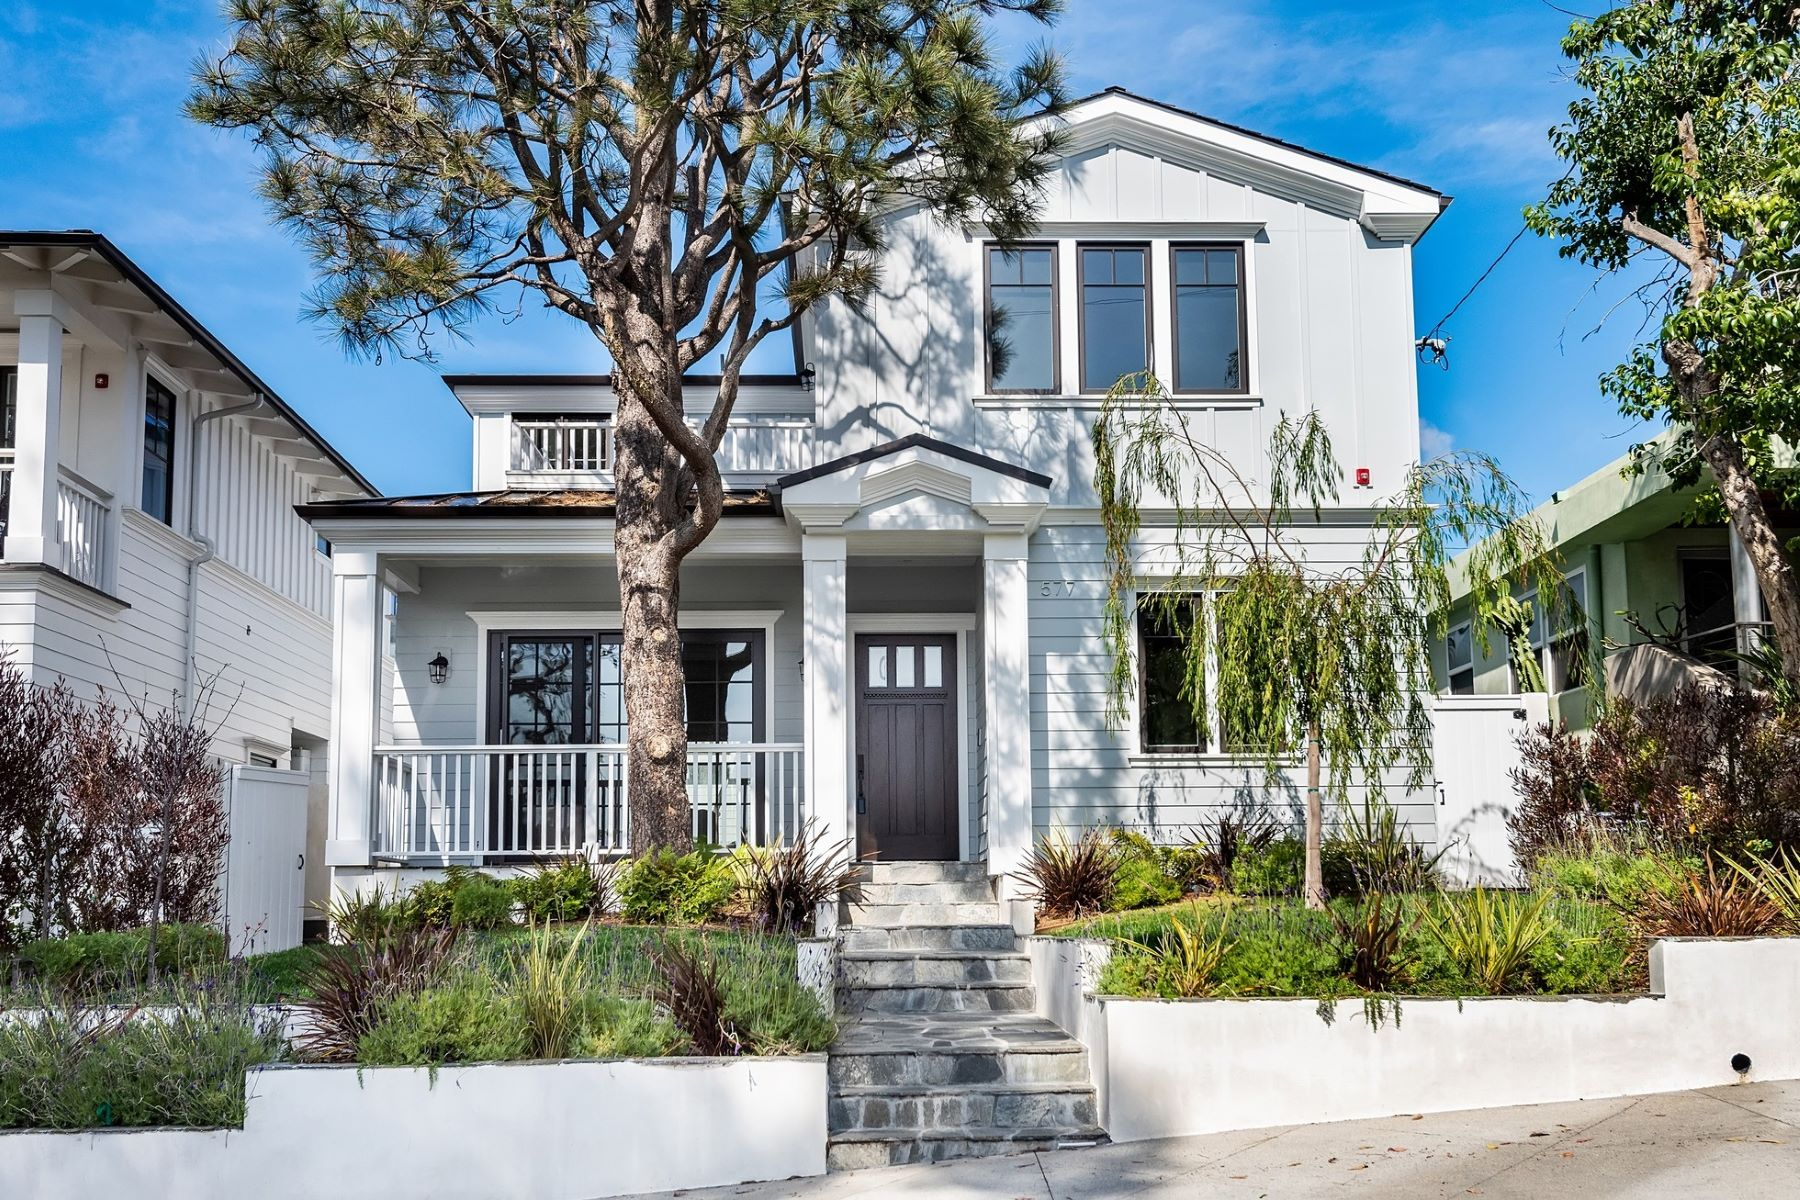 Single Family Homes for Sale at 577 31st Street, Manhattan Beach, CA 90266 577 31st Street Manhattan Beach, California 90266 United States